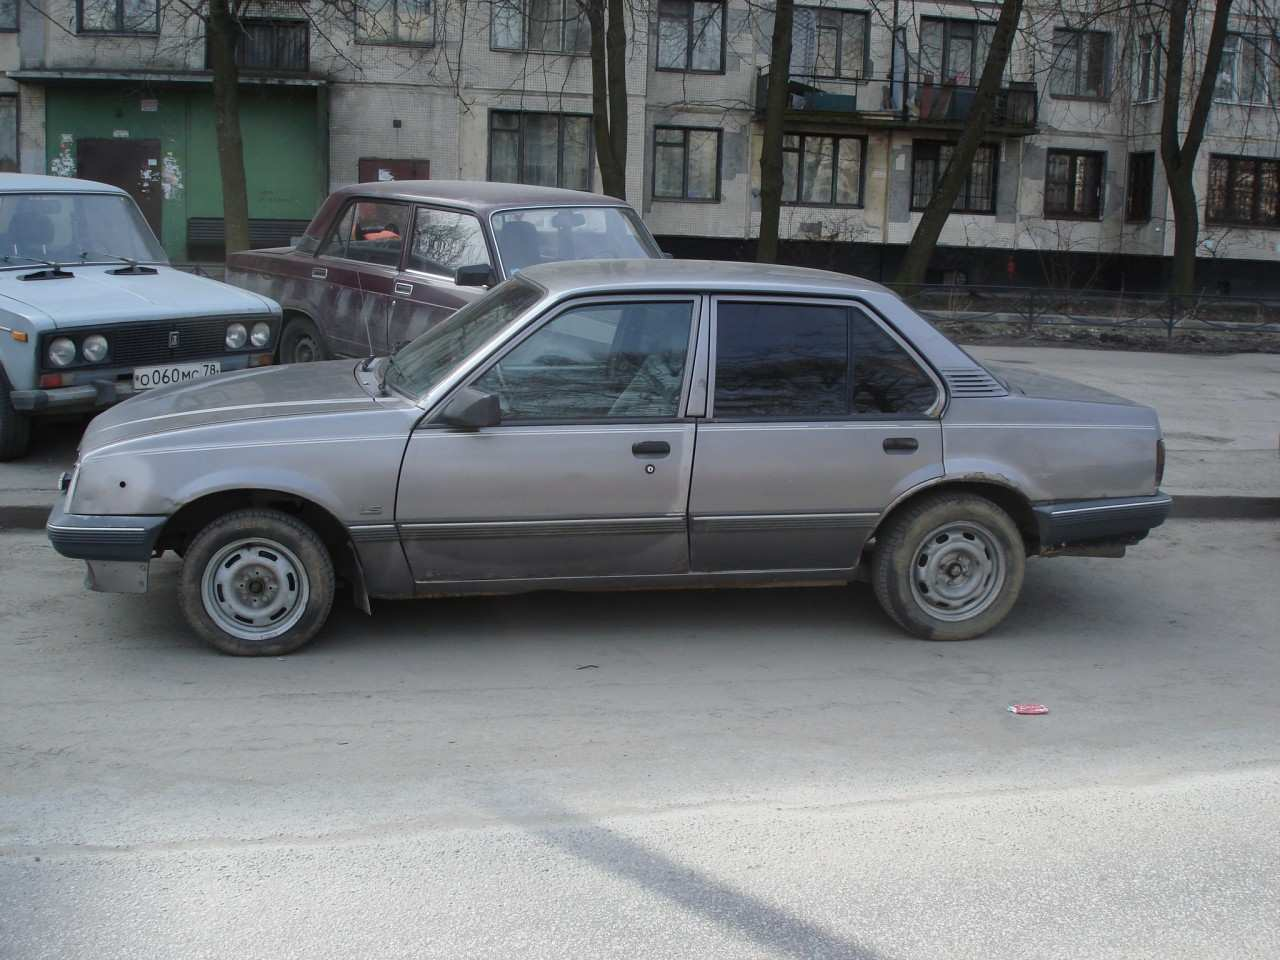 1988 opel ascona pics 1 8 gasoline ff manual for sale. Black Bedroom Furniture Sets. Home Design Ideas